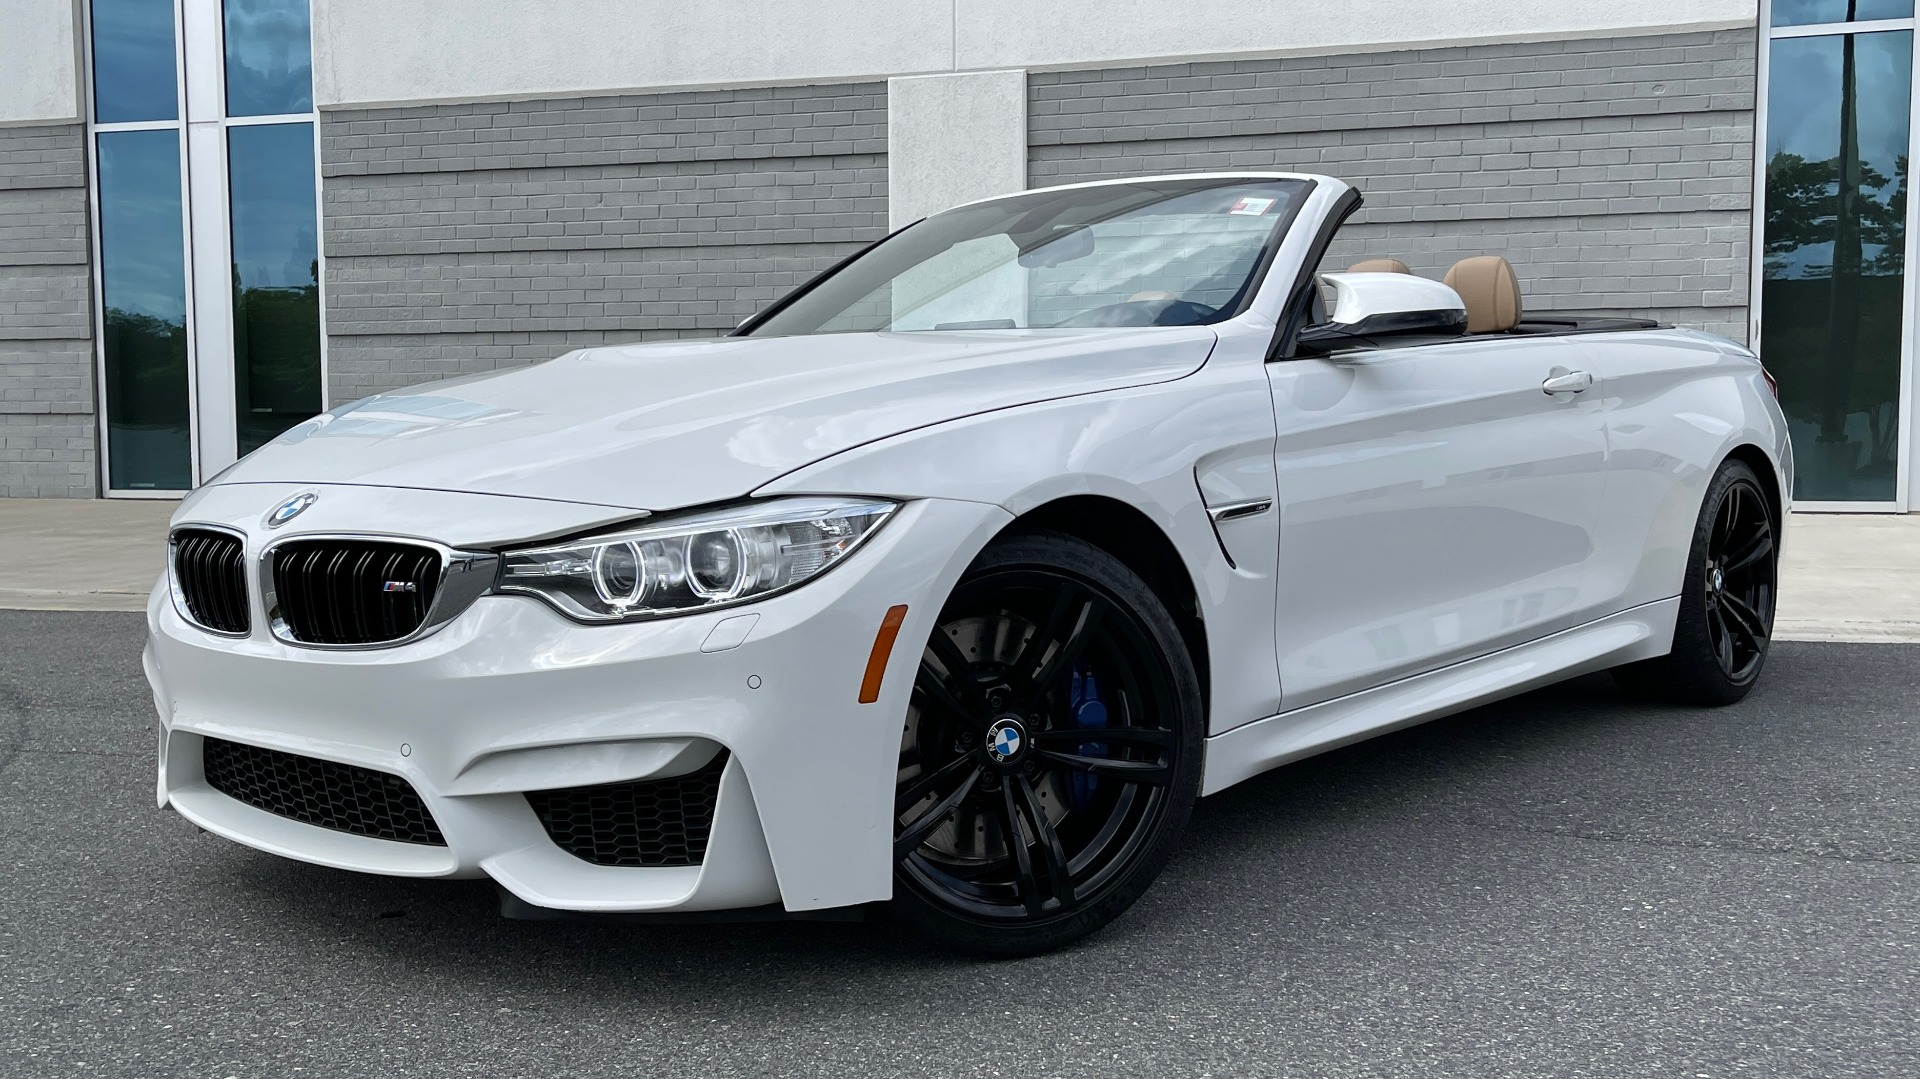 Used 2016 BMW M4 CONVERTIBLE 3.0L / 7-SPD AUTO / EXECUTIVE / ADAPT M SUSP / REARVIEW for sale $53,999 at Formula Imports in Charlotte NC 28227 1